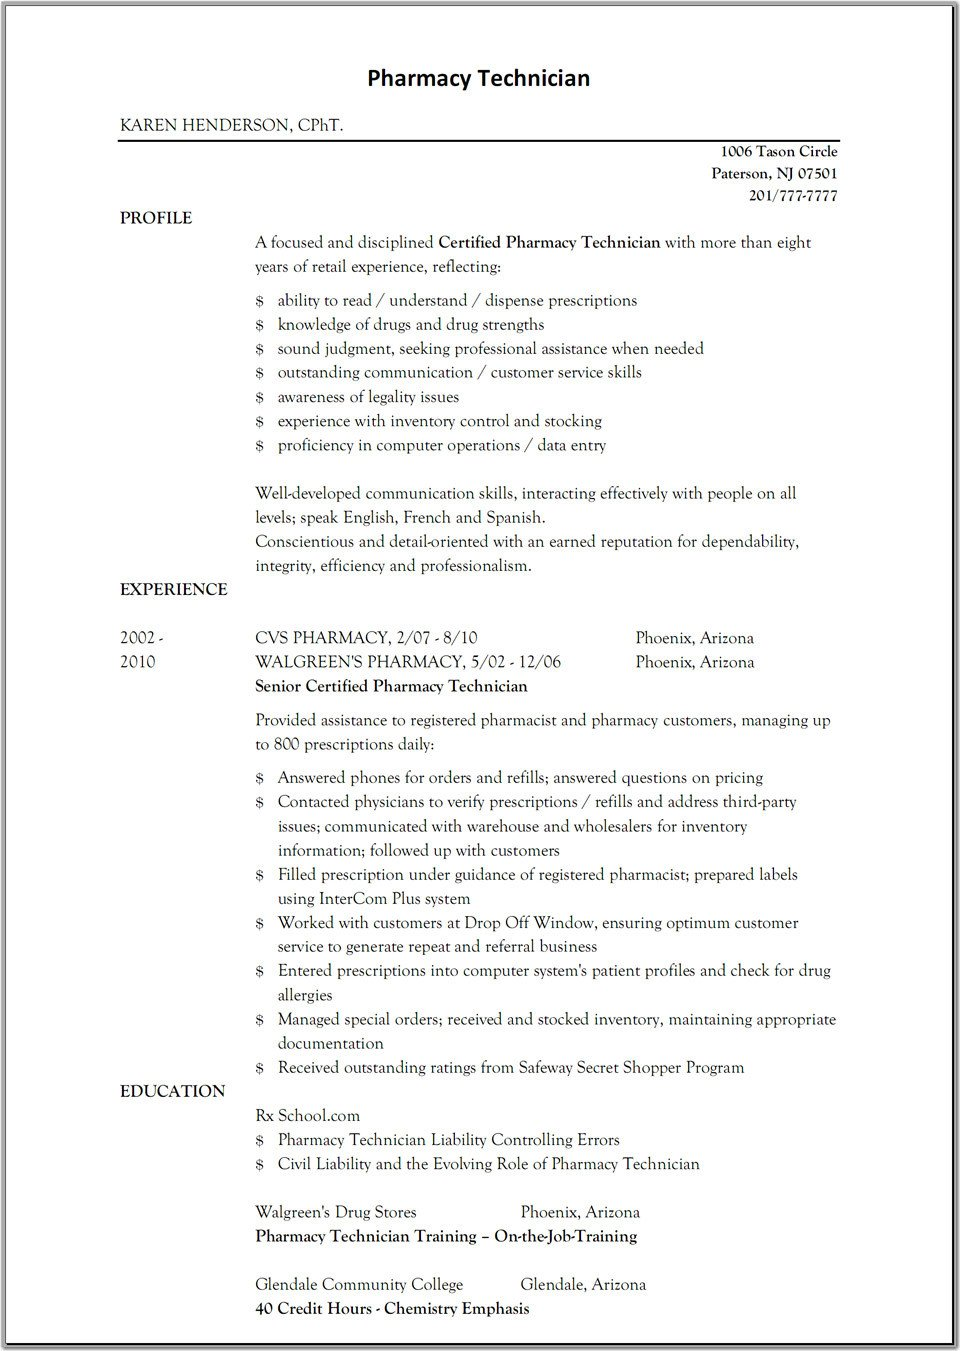 Pharmacy Technician Resume Sample Sample Resume for Pharmacy Technician